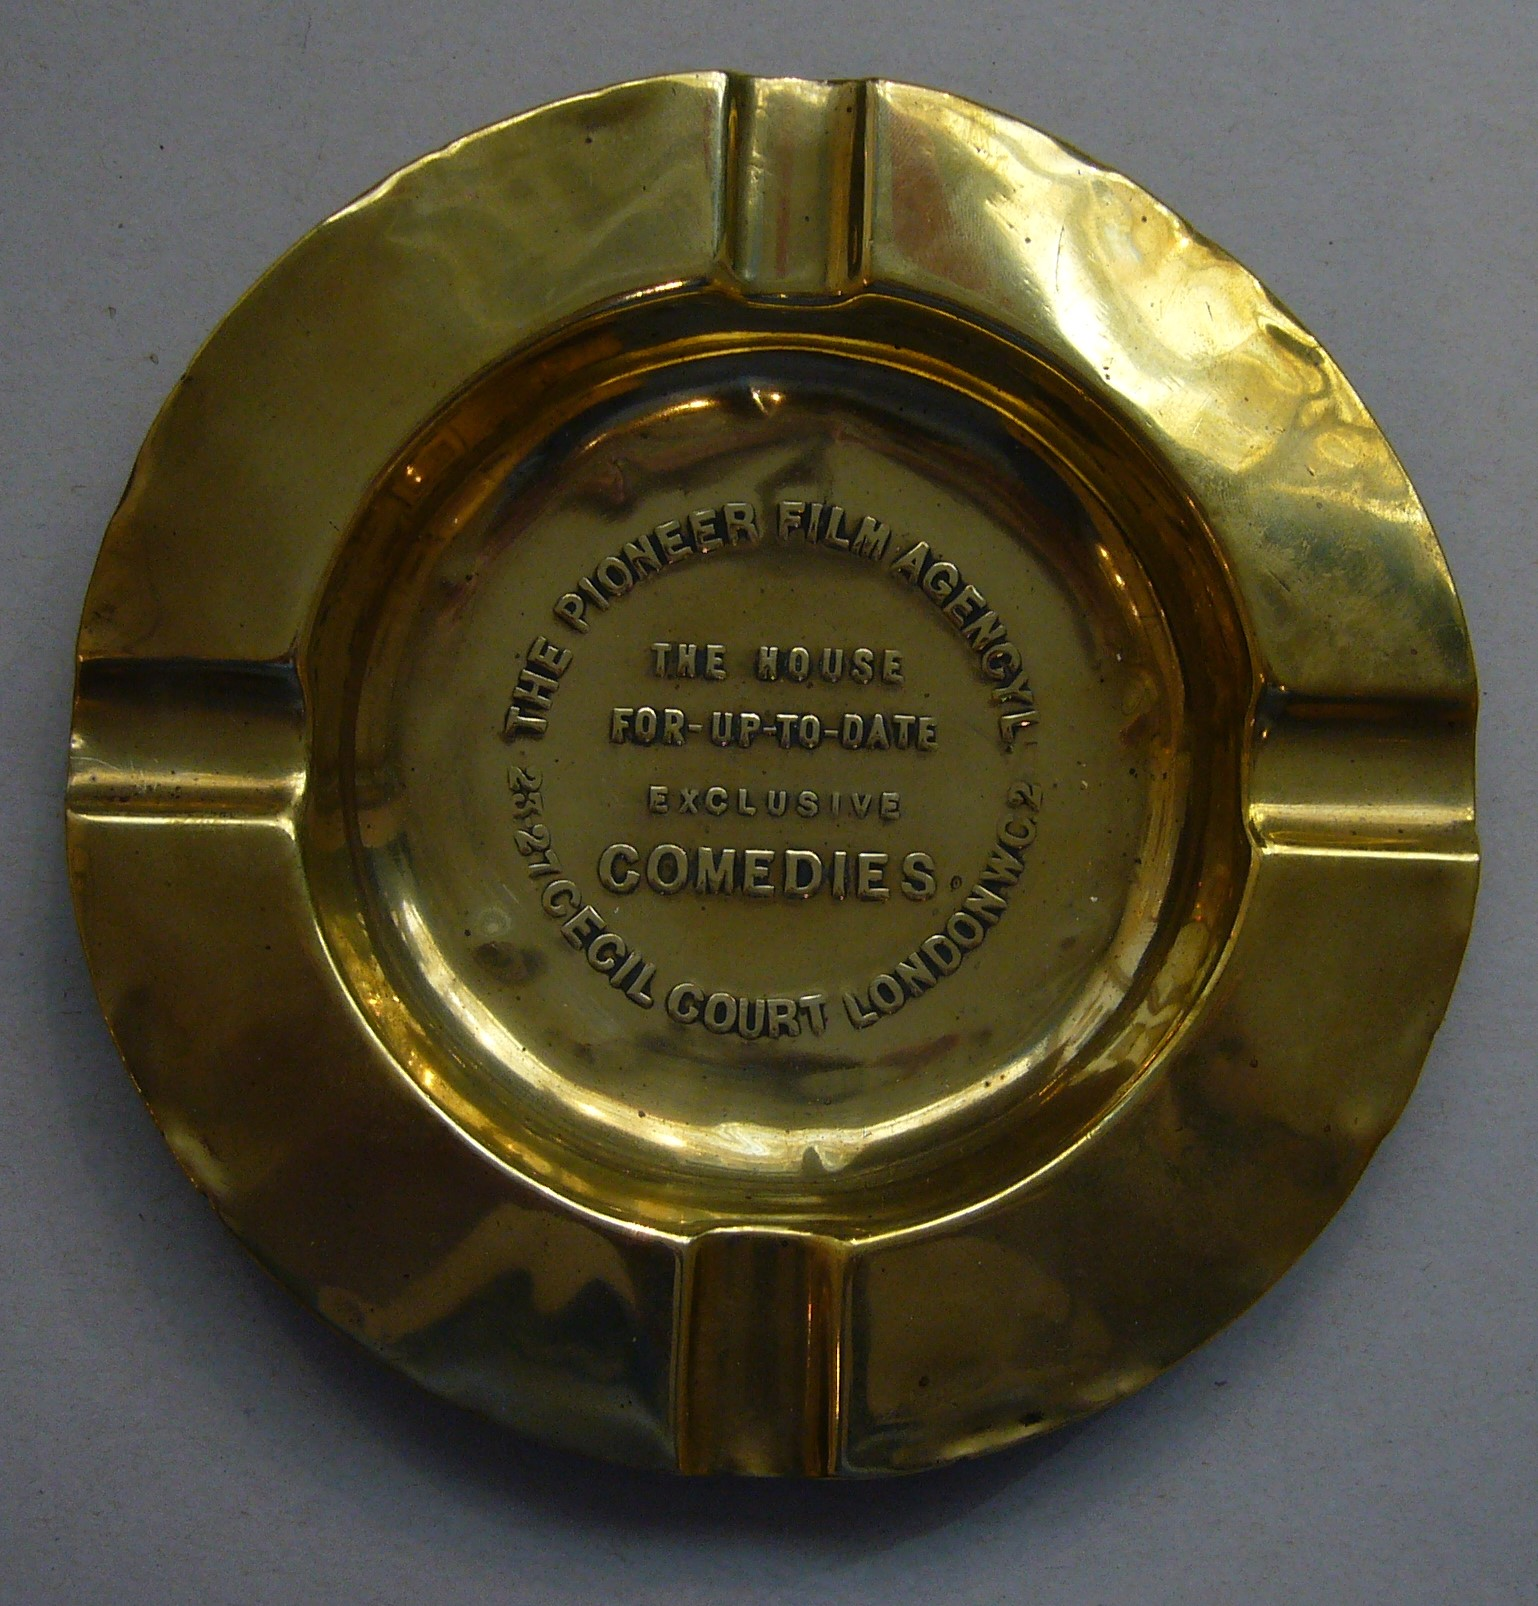 Brass ash-tray made for the Pioneer Film Company, c. 1912